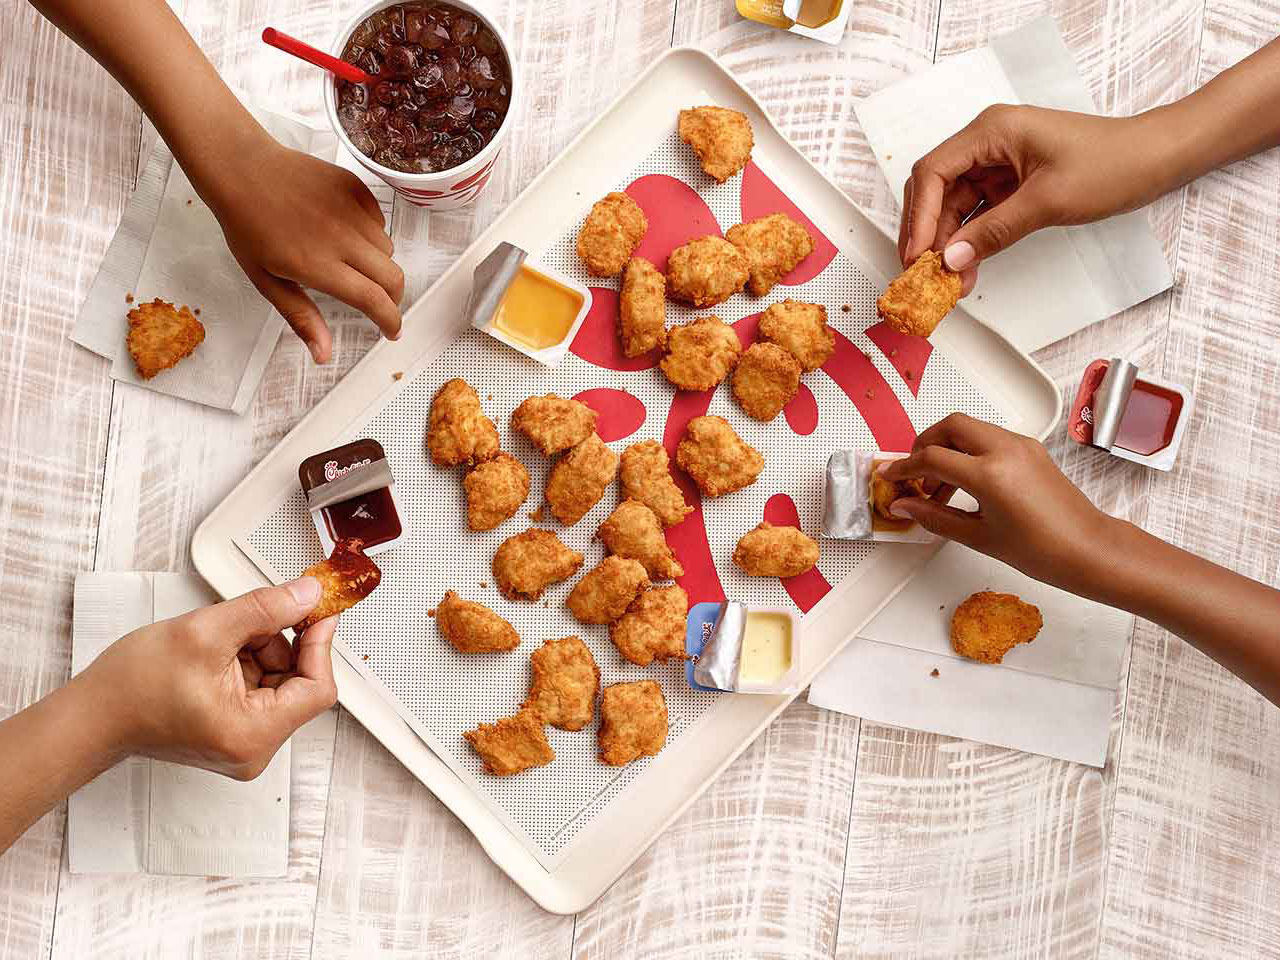 photo Chick-fil-A takes the title. The classic McNuggets are second, followed by Burger King and Wendys. Chick-fil-As simple little nuggets provide the right texture, flavor, and crispy goodness that lead us to believe it has the best chicken nuggets in the game